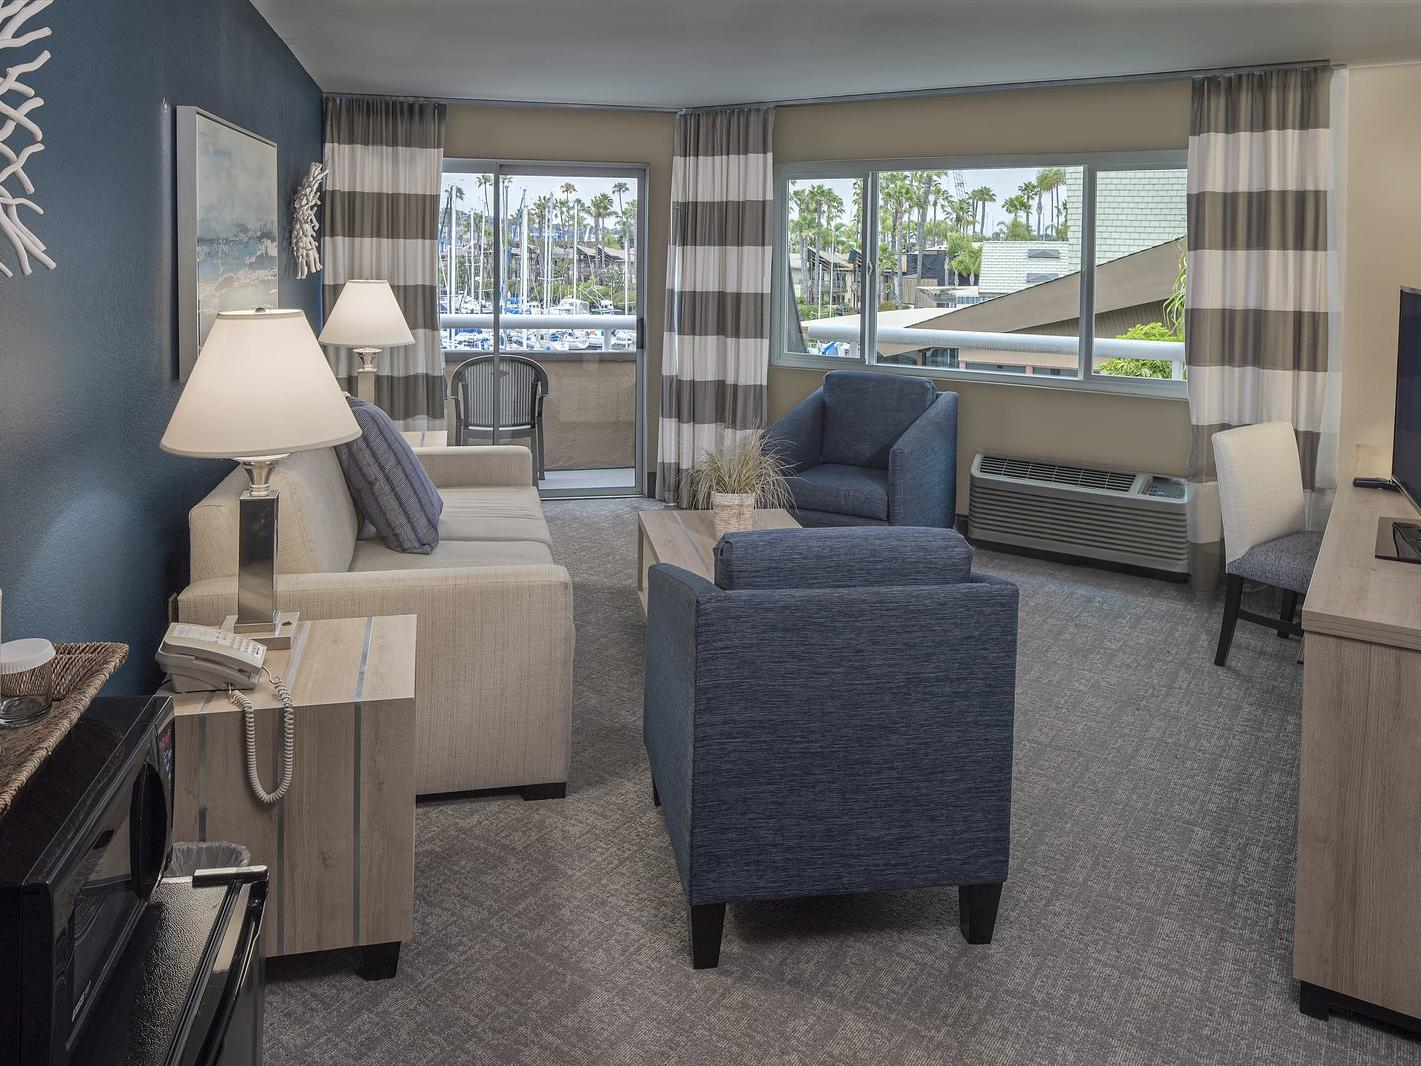 View of One Bedroom Suite living room area at Bay Club Hotel